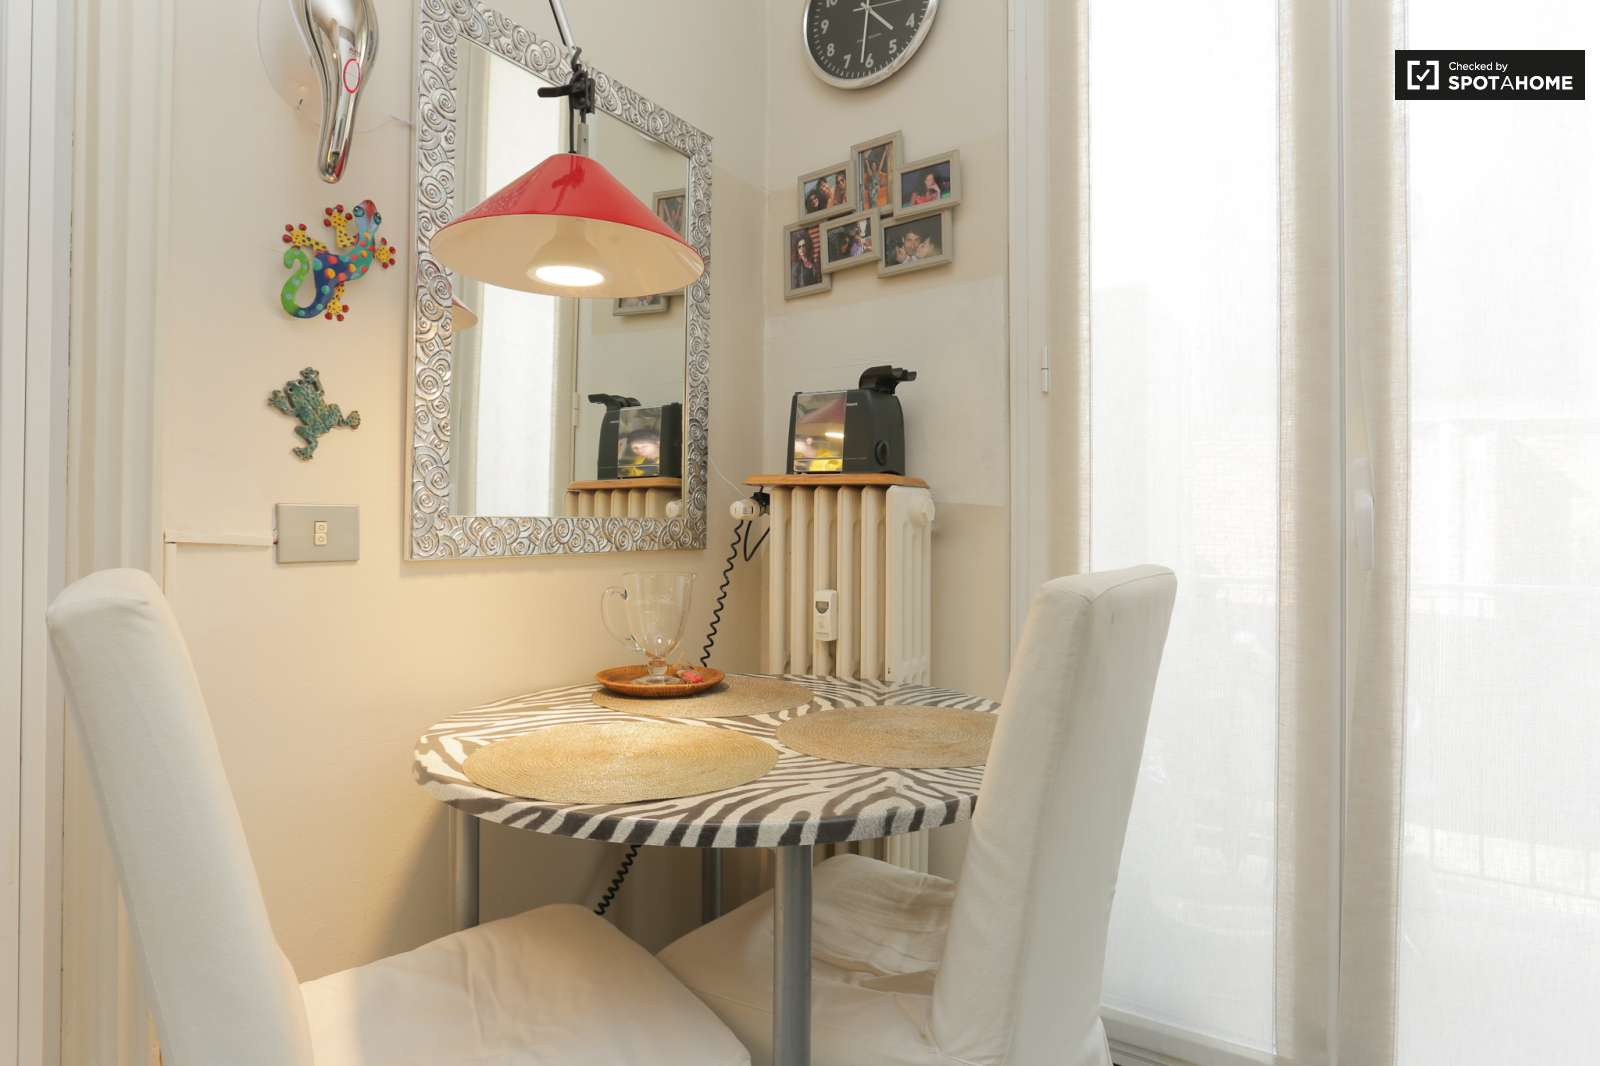 Stylish room for rent in 4-bedroom apartment in Bocconi